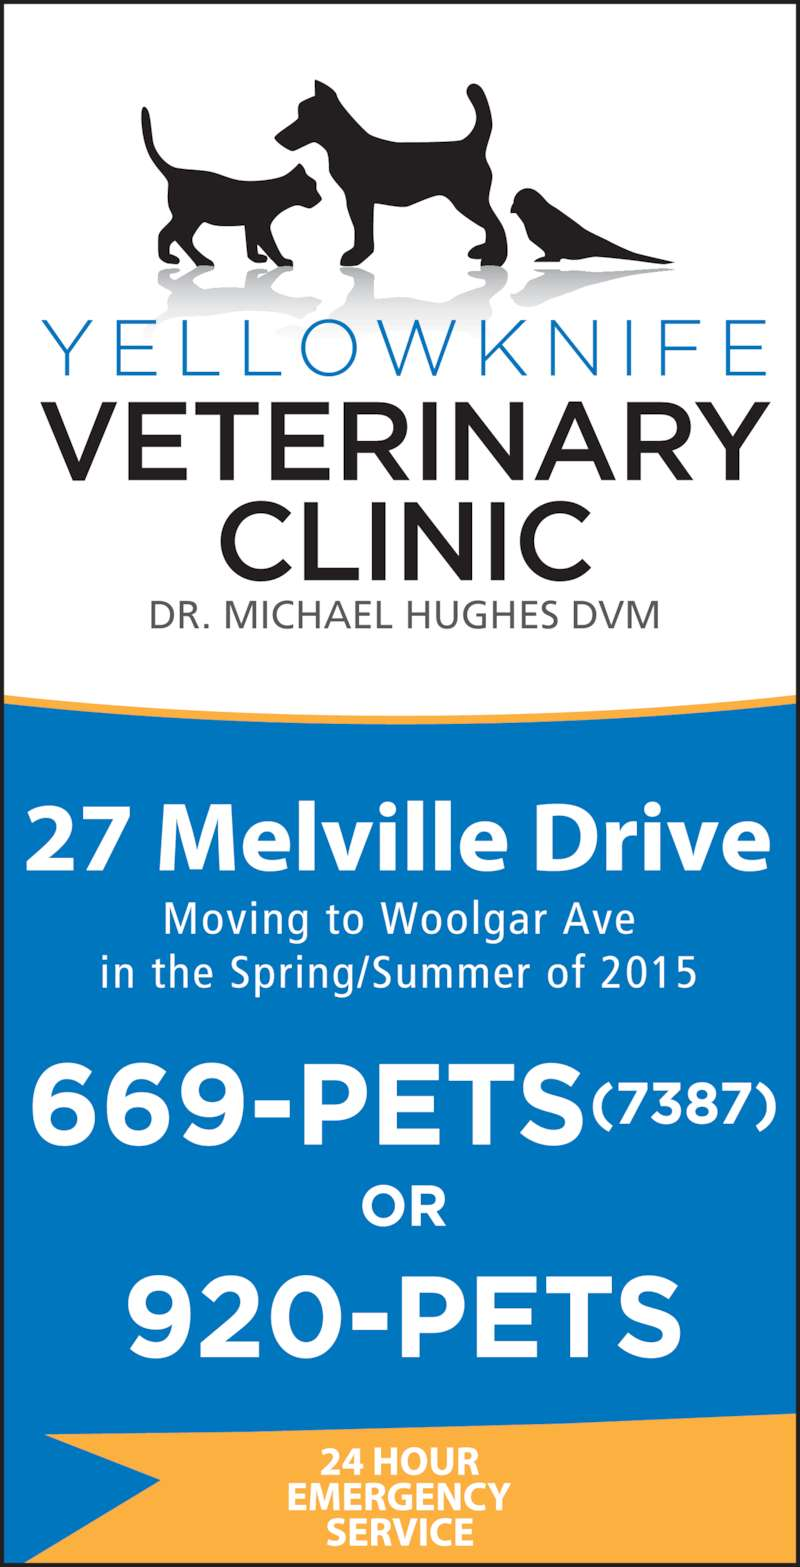 Yellowknife Veterinary Clinic (867-669-7387) - Display Ad - DR. MICHAEL HUGHES DVM Moving to Woolgar Ave in the Spring/Summer of 2015 DR. MICHAEL HUGHES DVM Moving to Woolgar Ave in the Spring/Summer of 2015